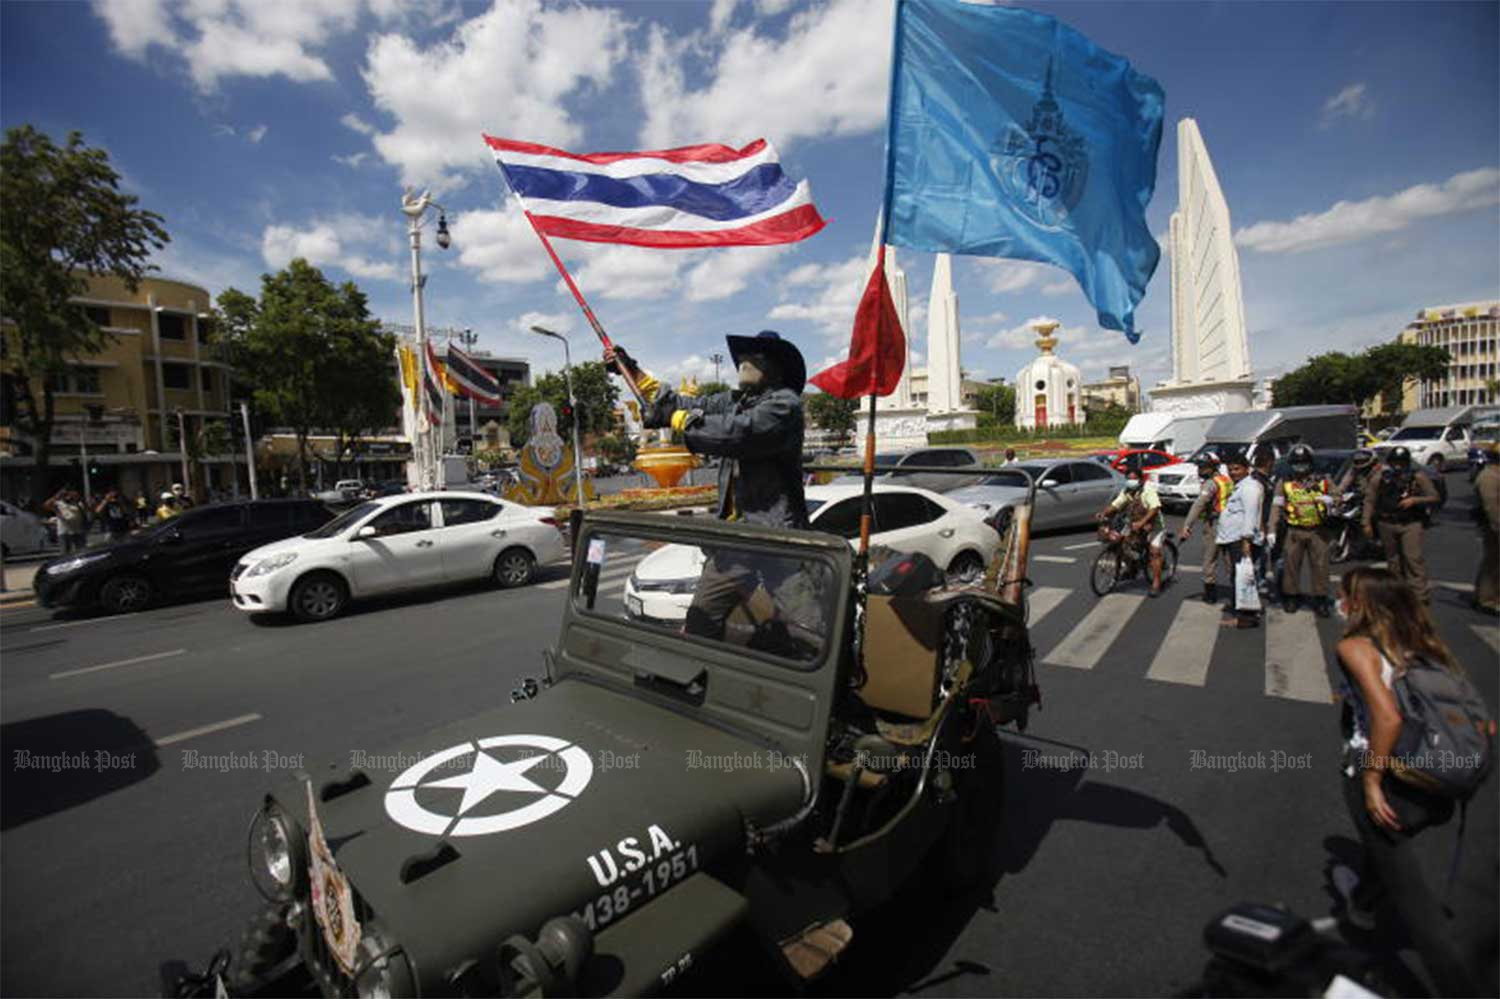 A demonstrator waves the national flag as the pro-government Archeewa Chuay Chart (Vocational Students Helping the Nation) stages a rally at the Democracy Monument on Ratchadamnoen Avenue. (Photo by Nutthawat Wicheanbut)